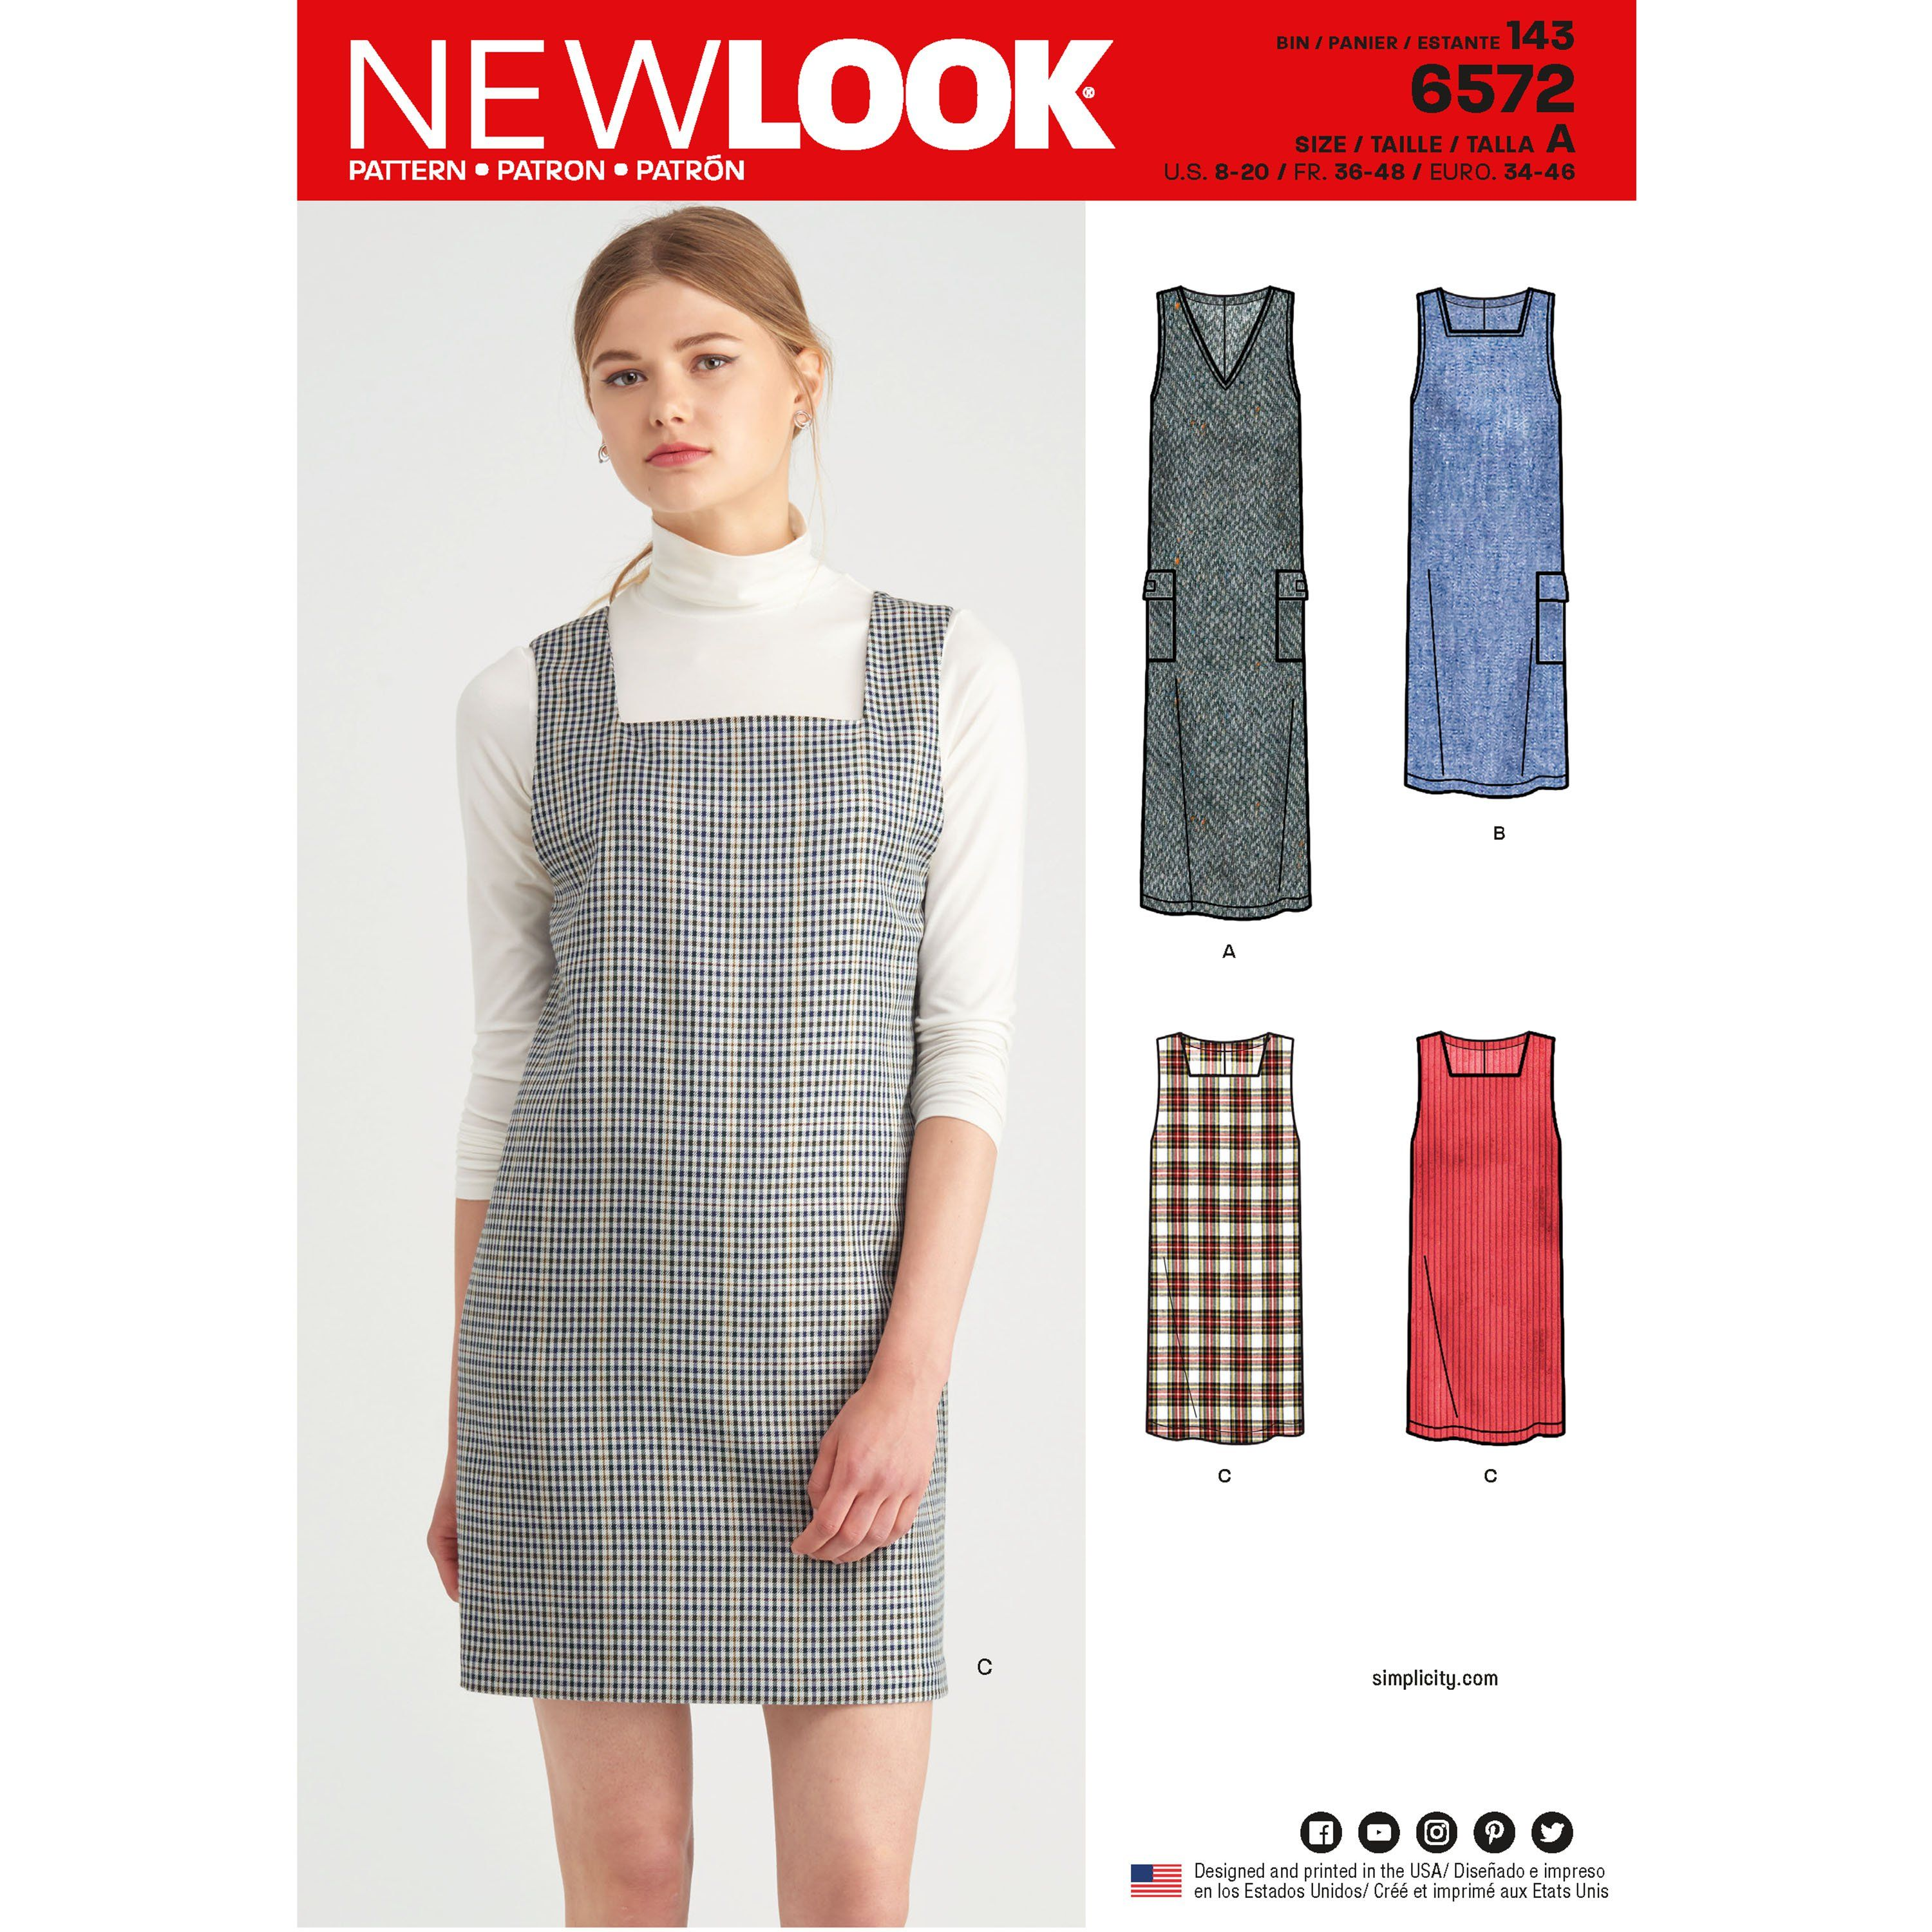 These simple yet stylish missesu jumper dresses feature a square or